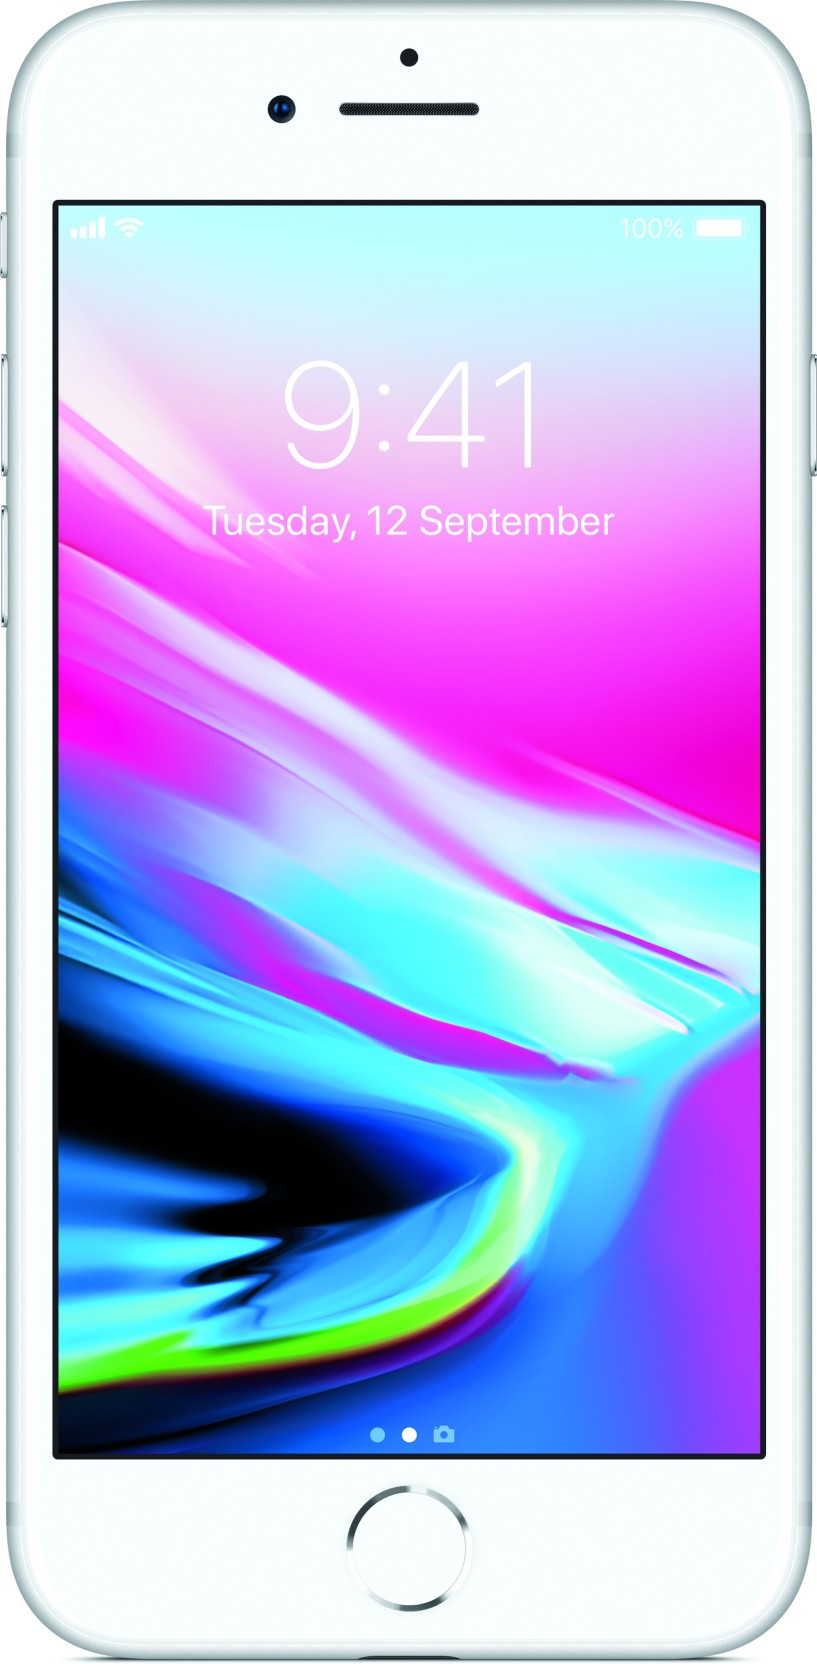 Iphone 8 Silver 64gb Online At Best Price Only On Original Hn Crystal 15 G Offer